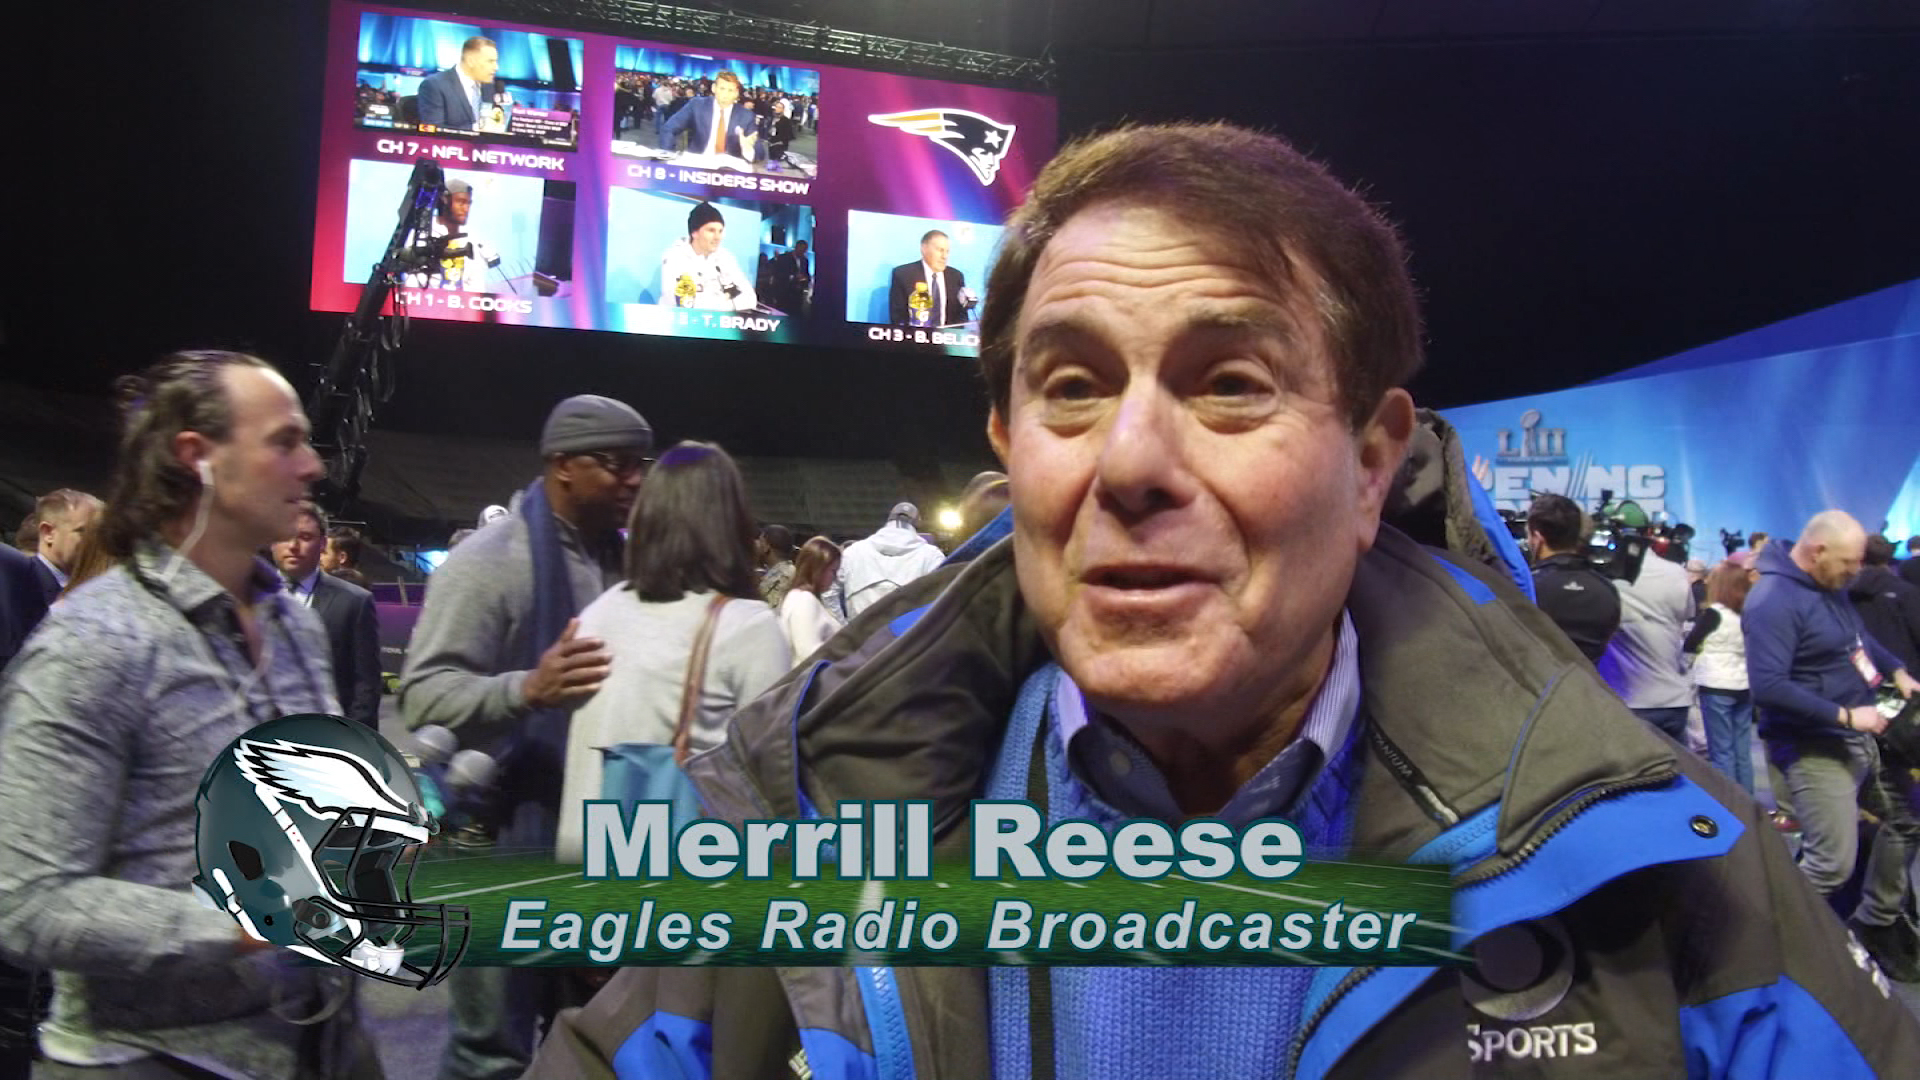 Super Bowl LII: Merrill Reese, Voice of the Eagles